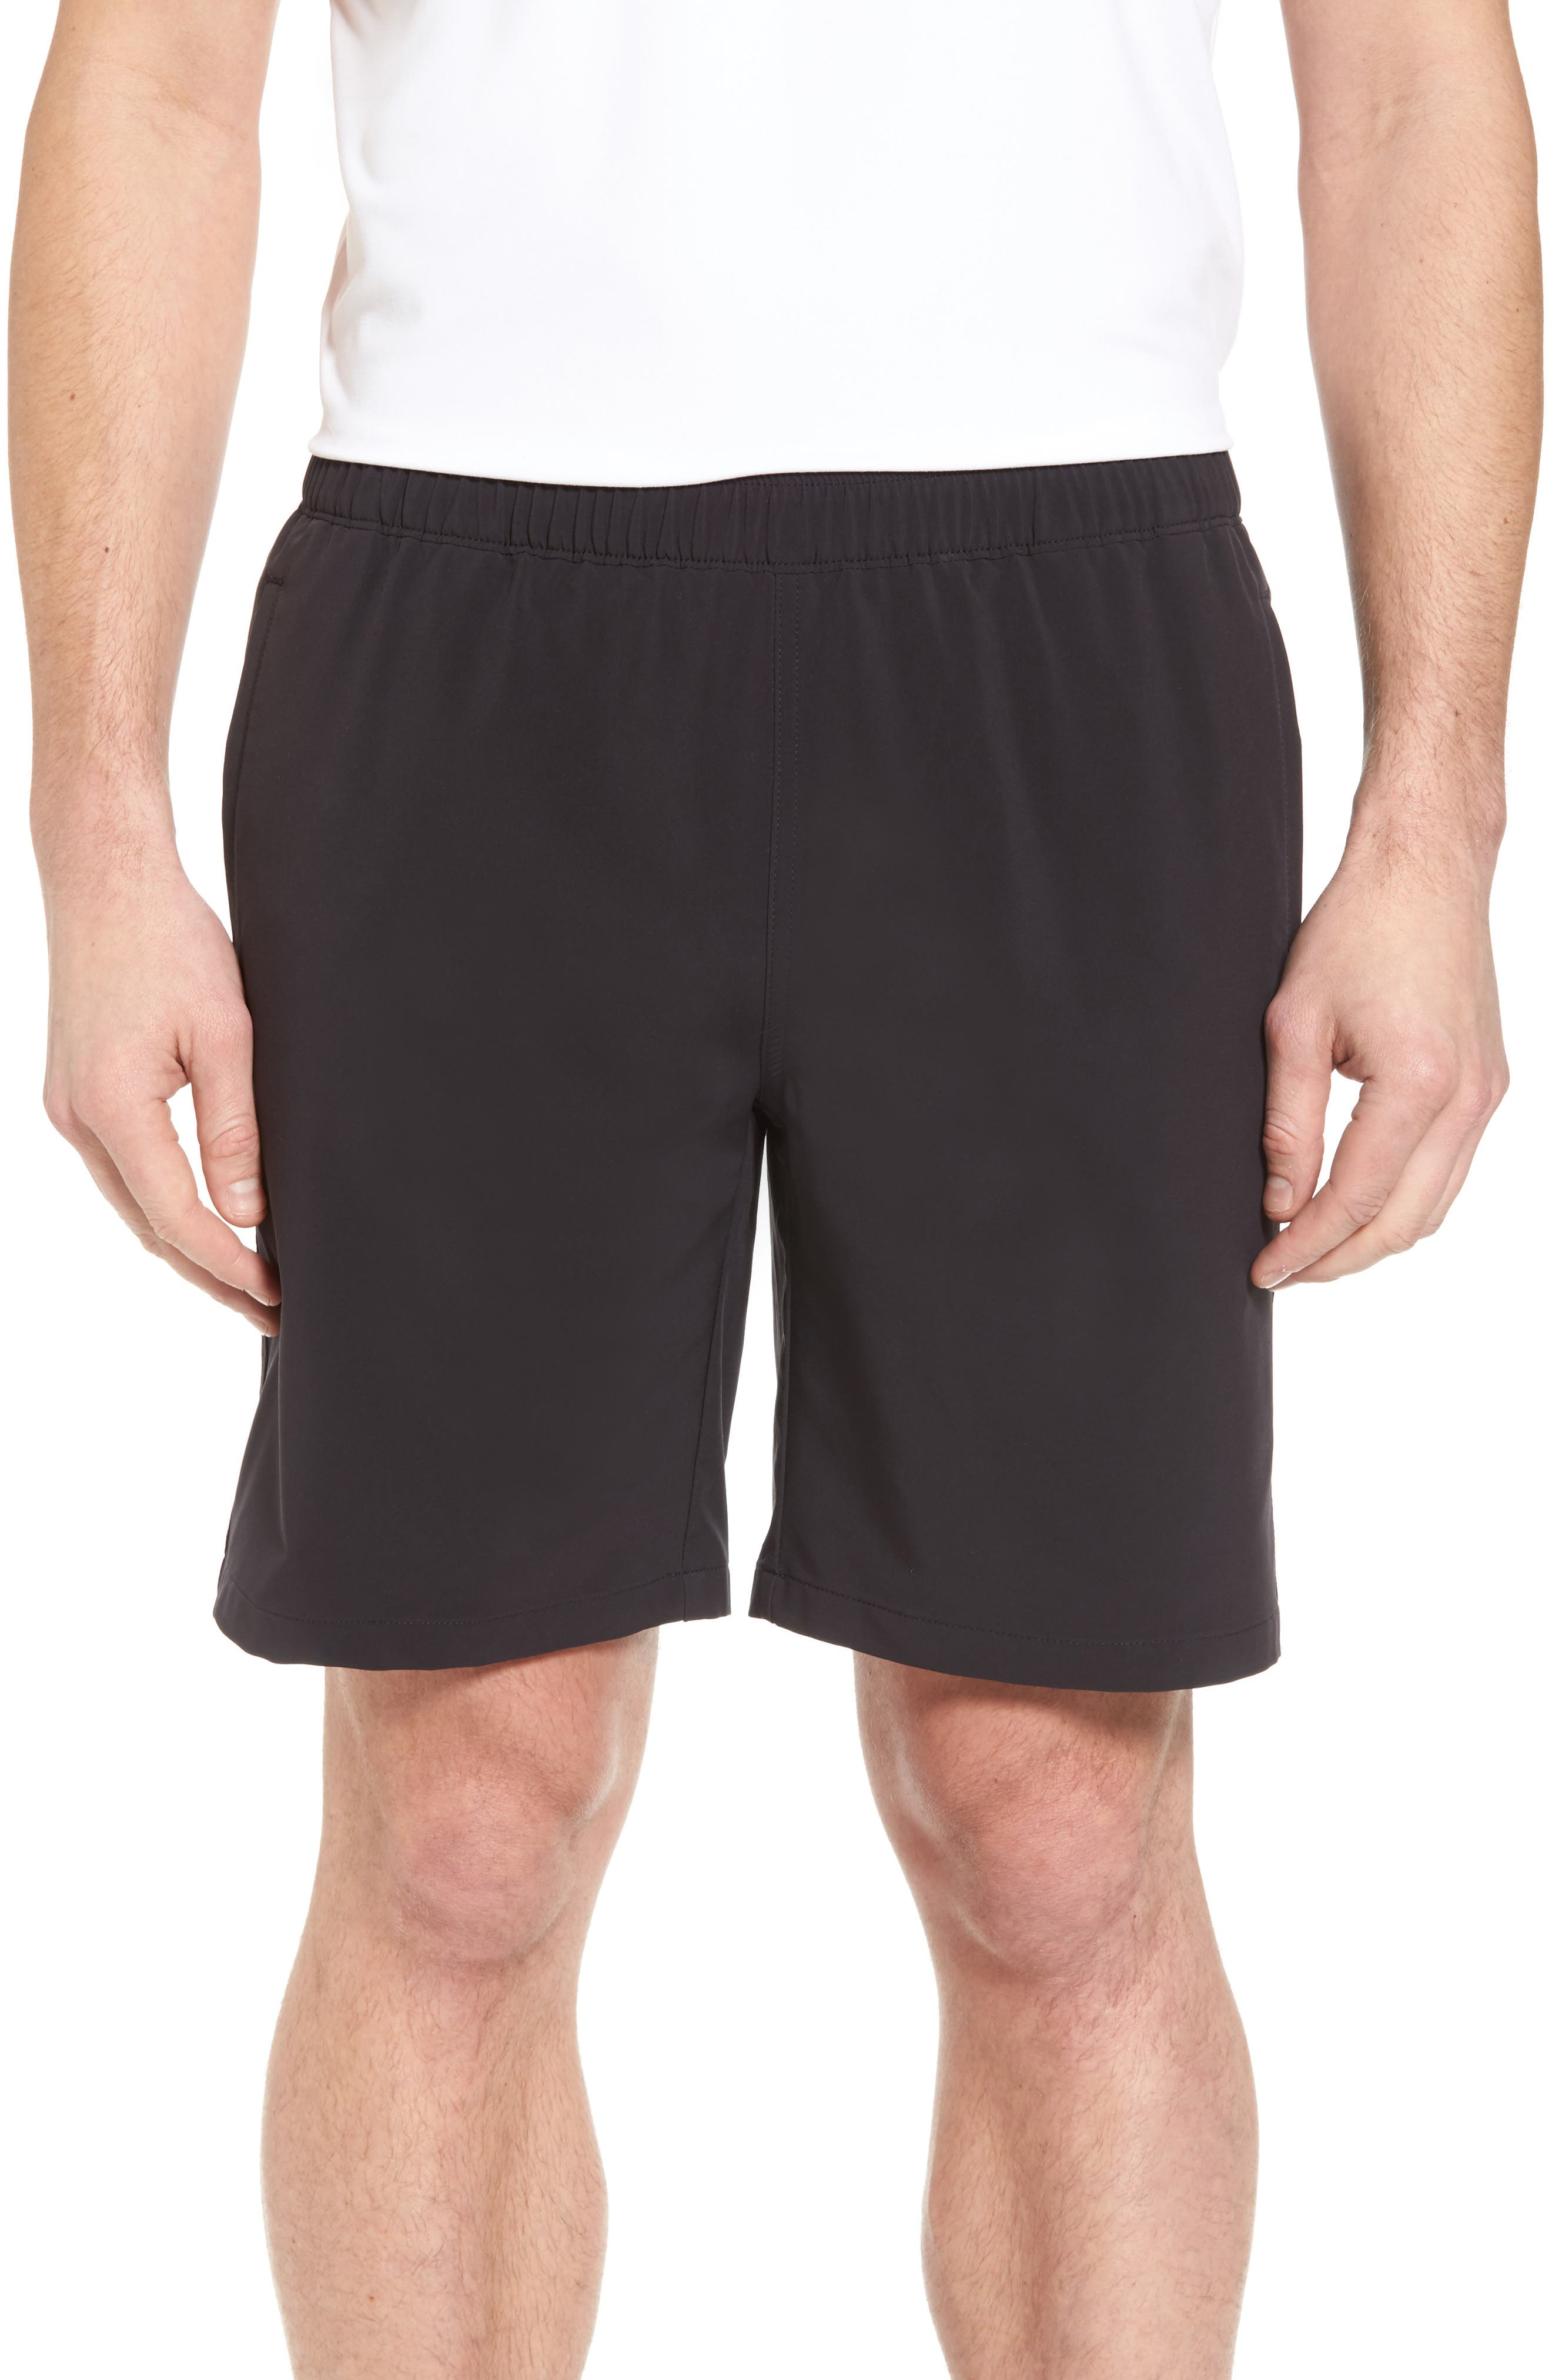 Oslo Sport Shorts,                             Main thumbnail 1, color,                             001